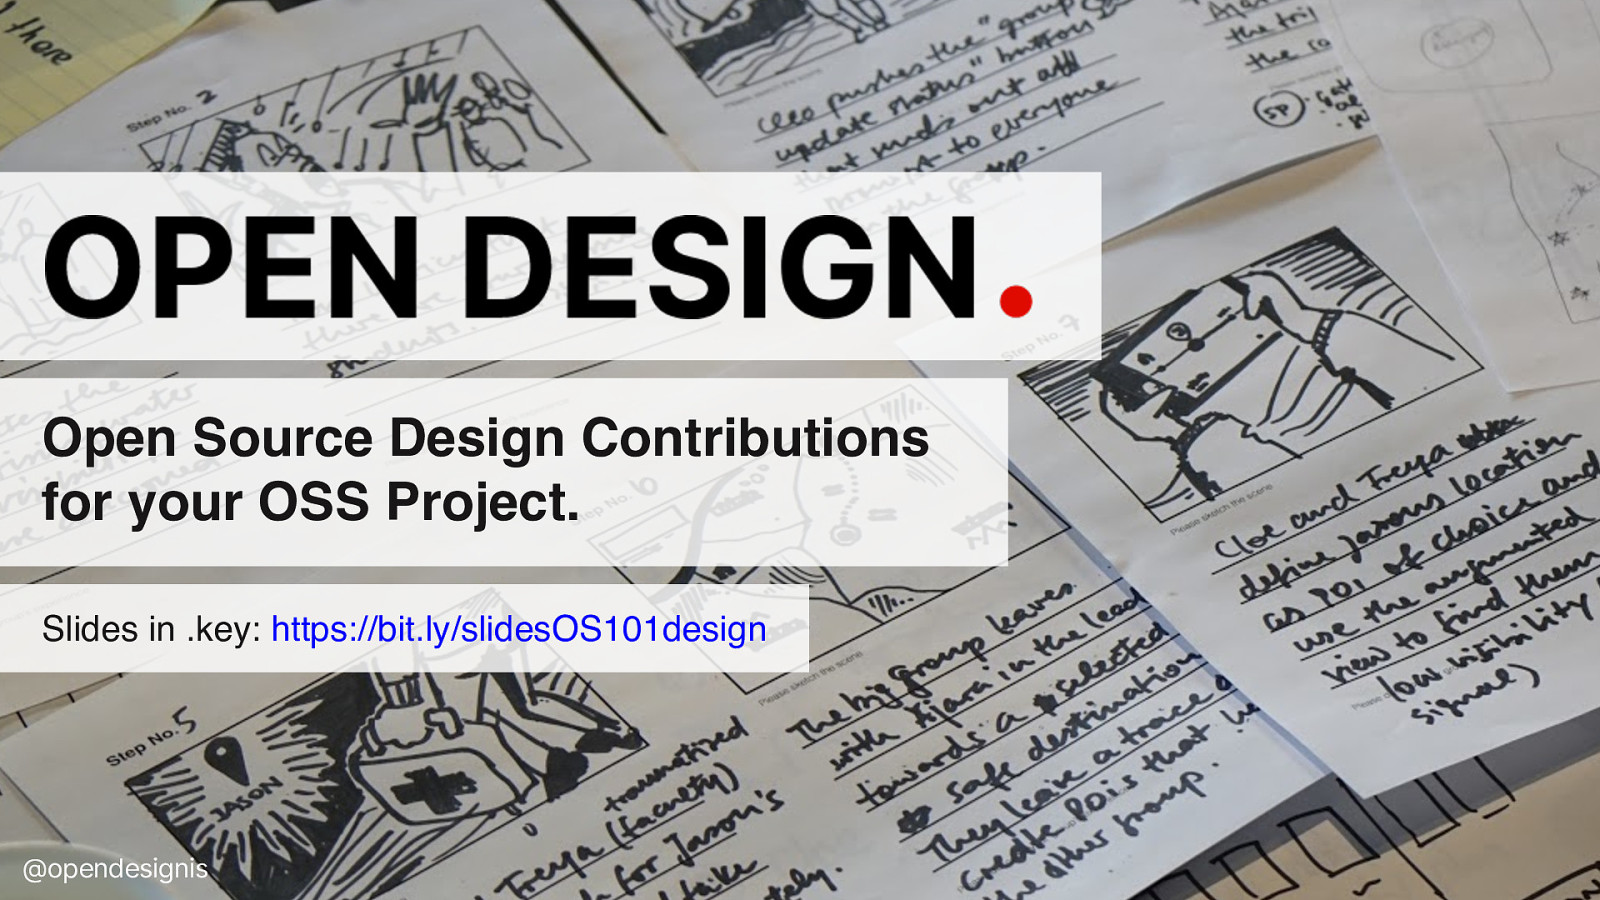 Open Source Design Contributions for your OSS Project.